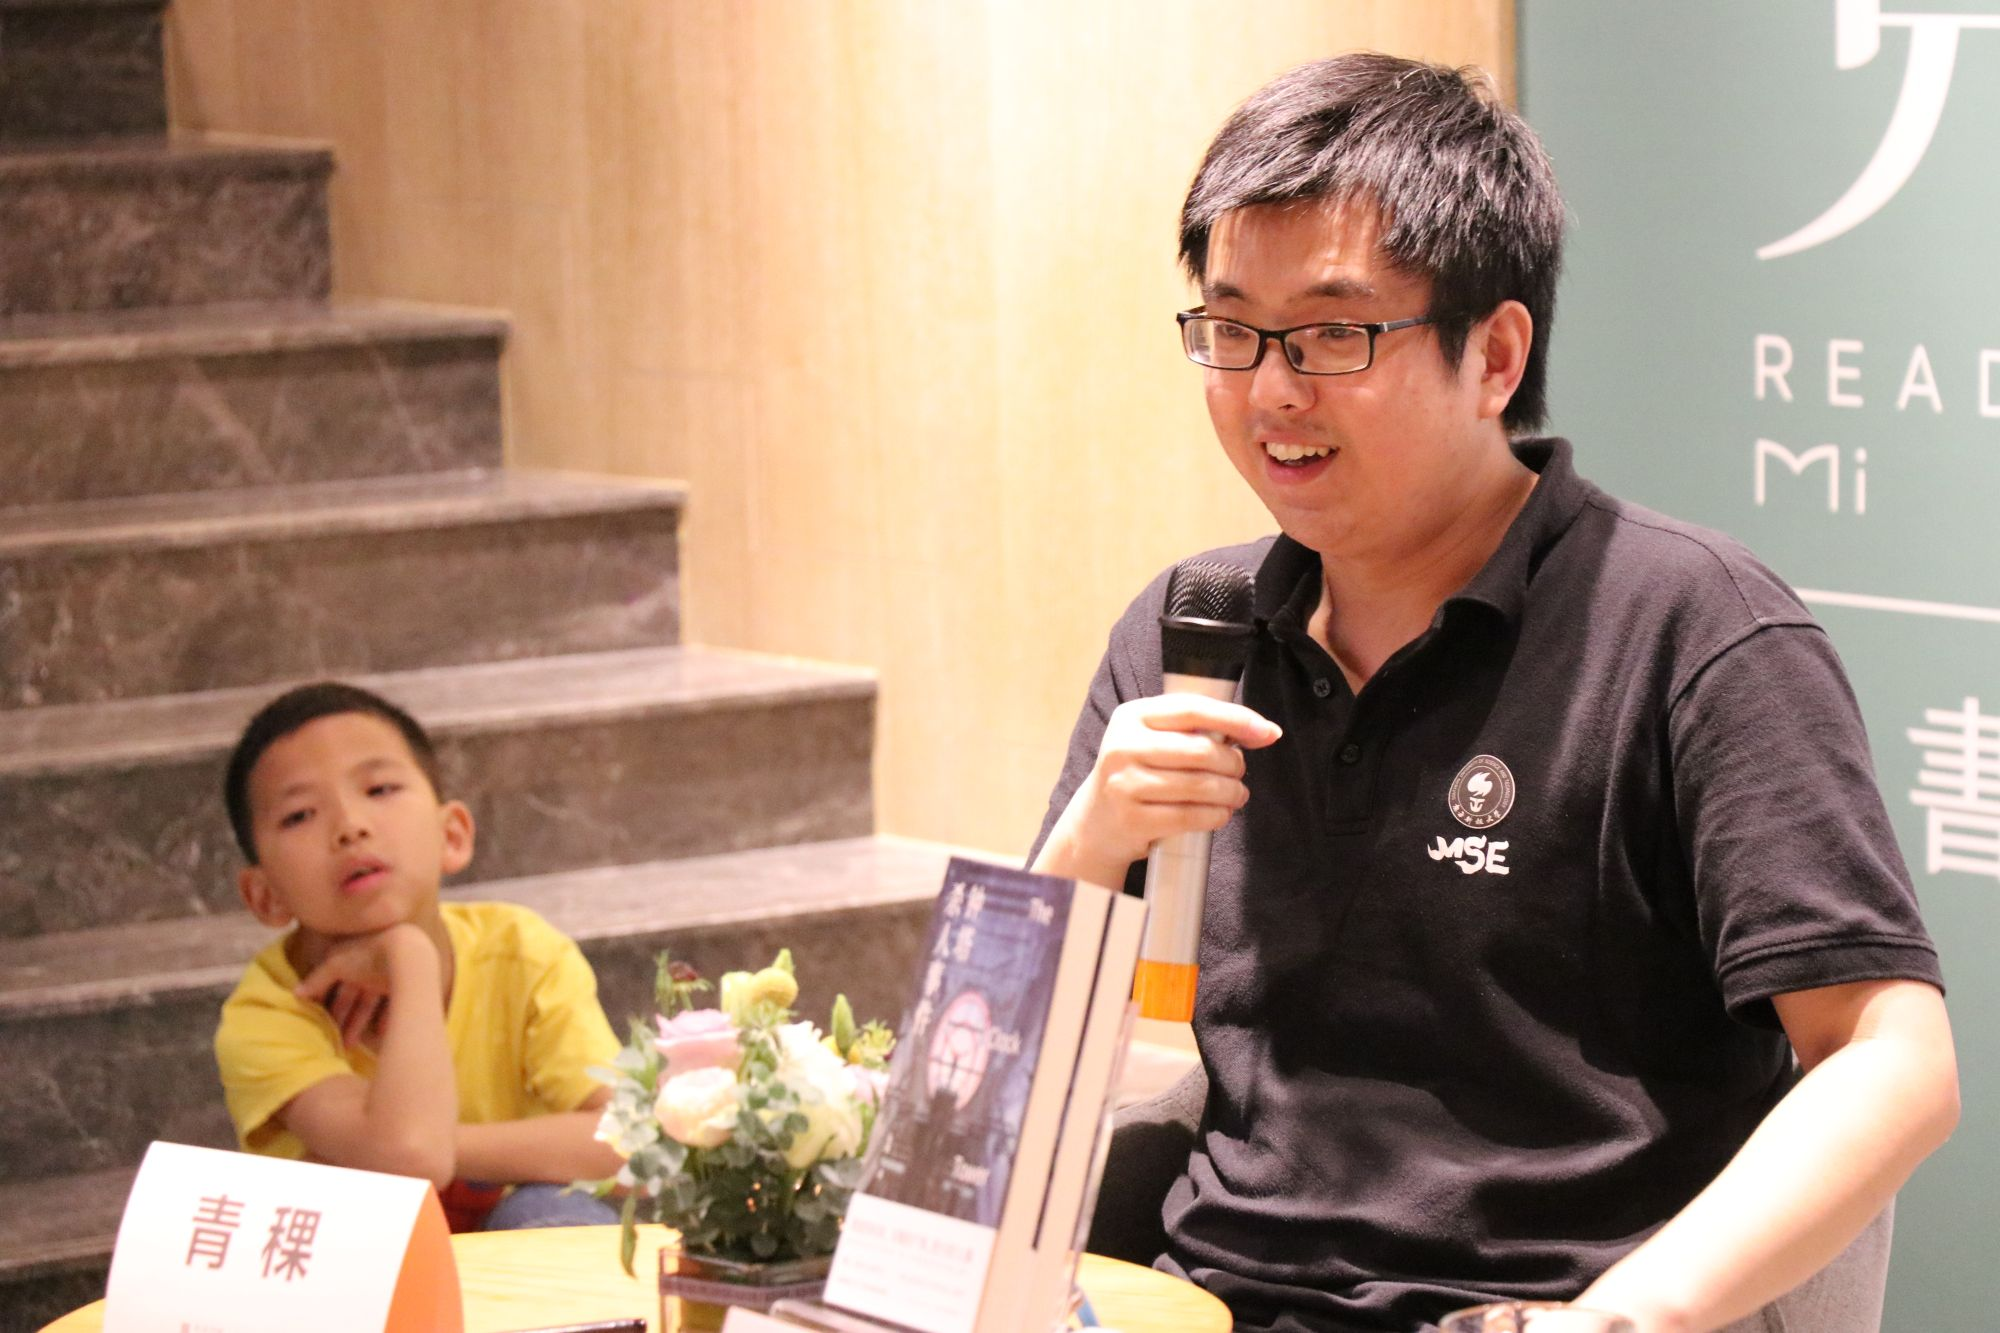 The Double Identity of Detective Fiction Author: Interview with Class of 2018 Student Hong Ying (aka Qing Ke)